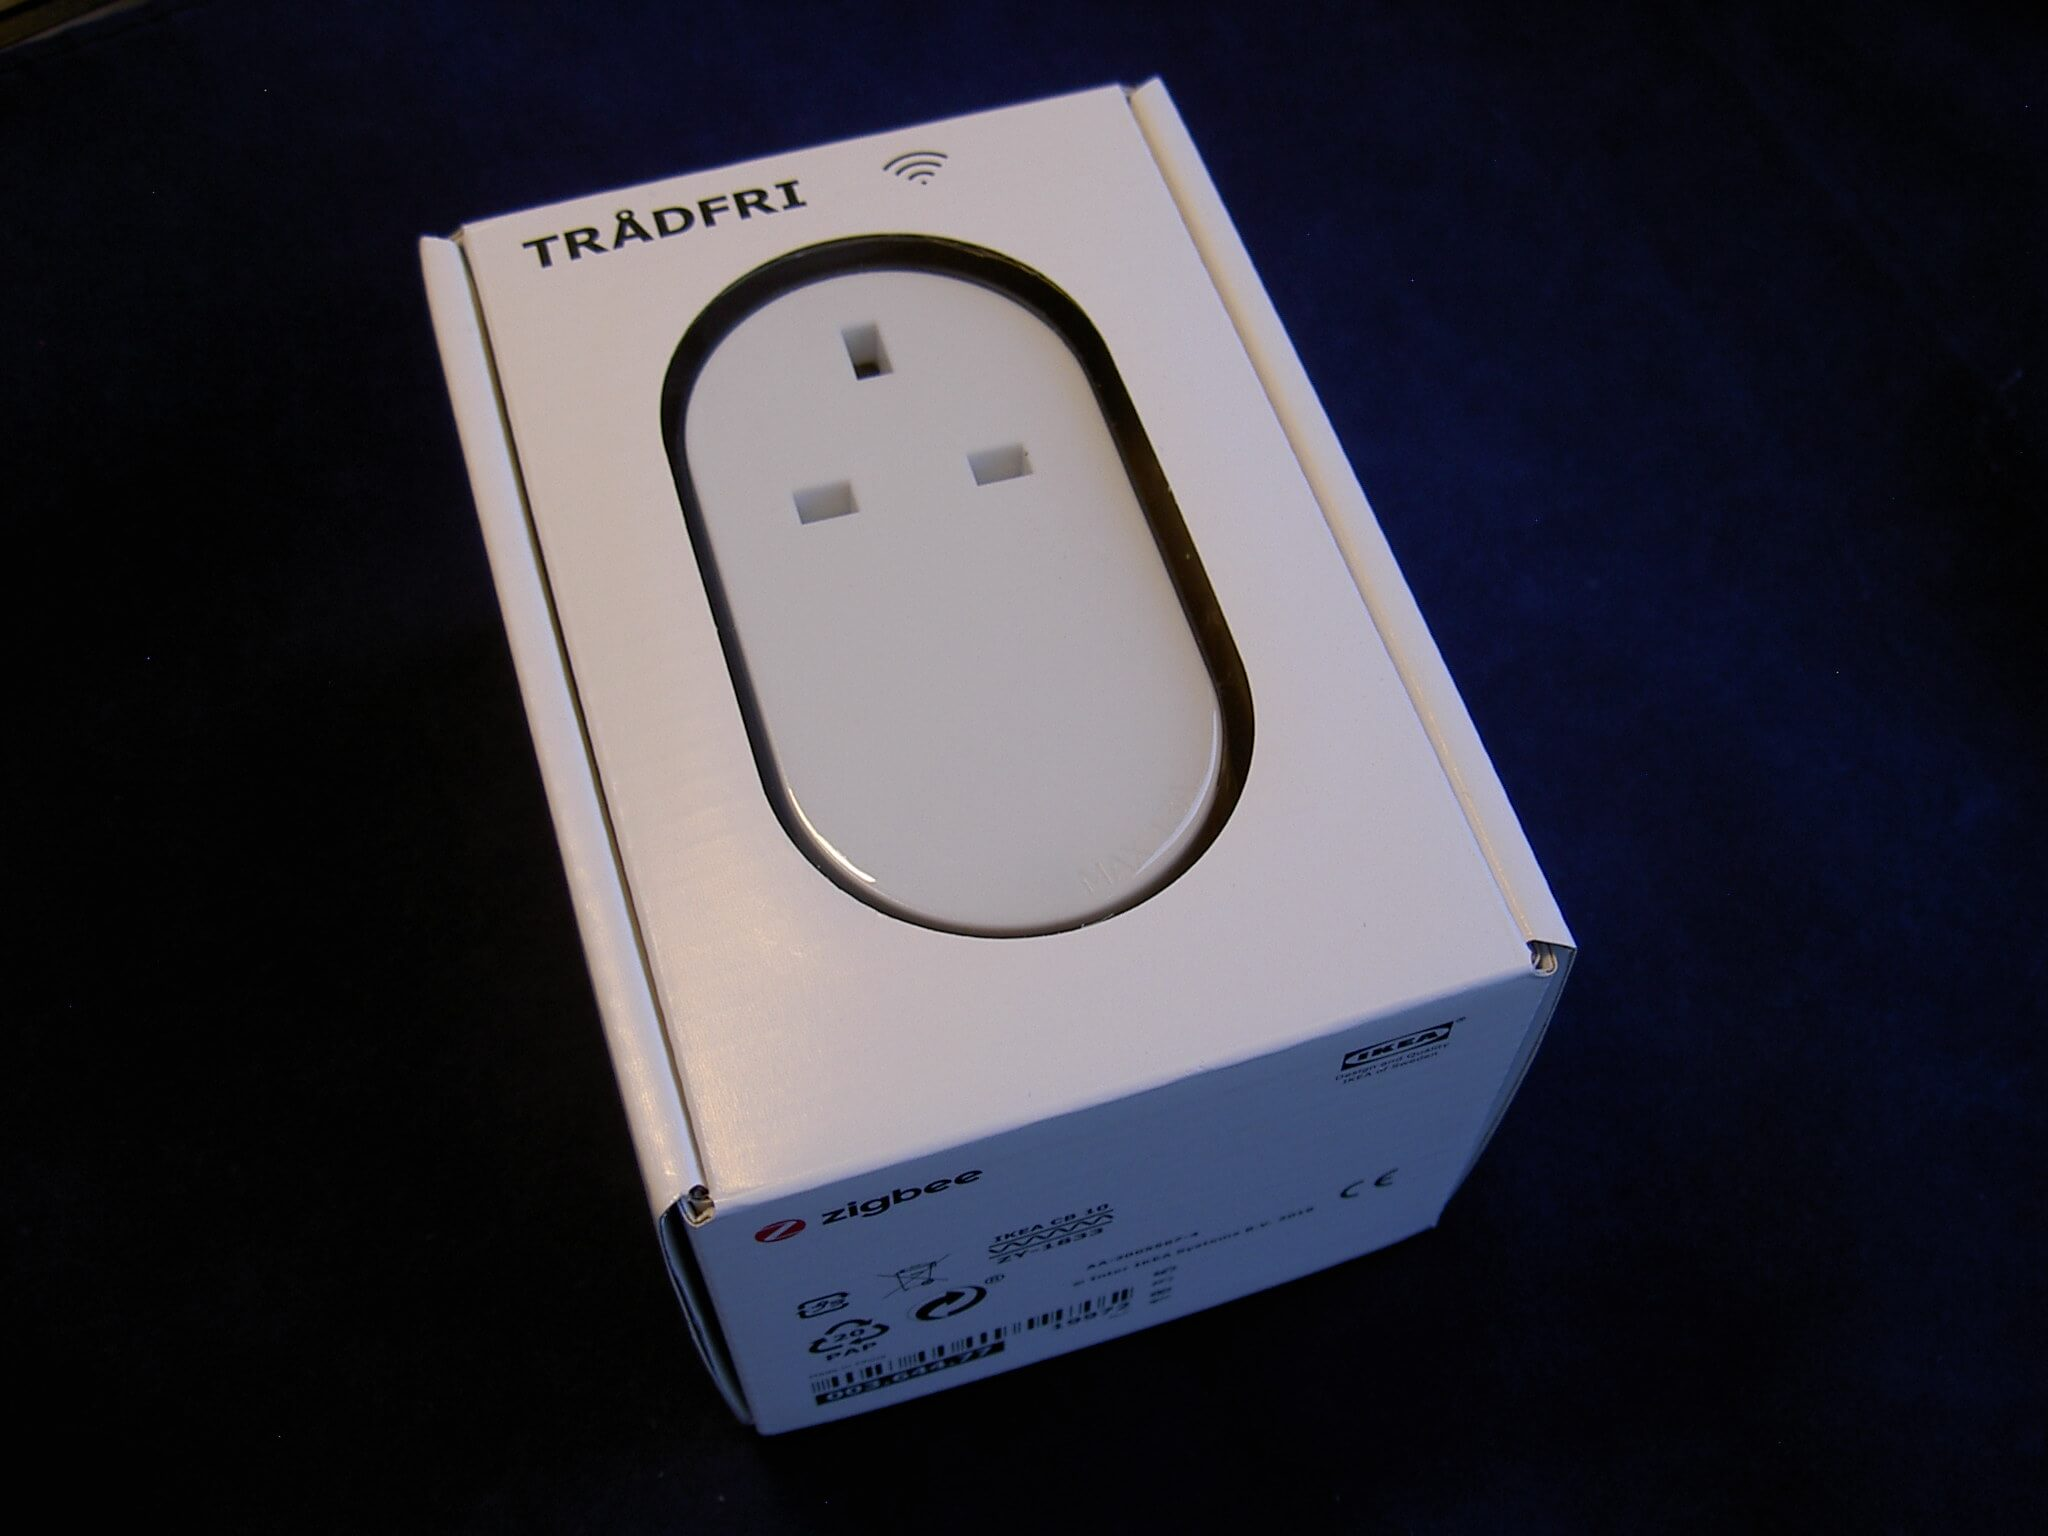 Ikea Tradfri Outlet with Samsung SmartThings - Geek News Central